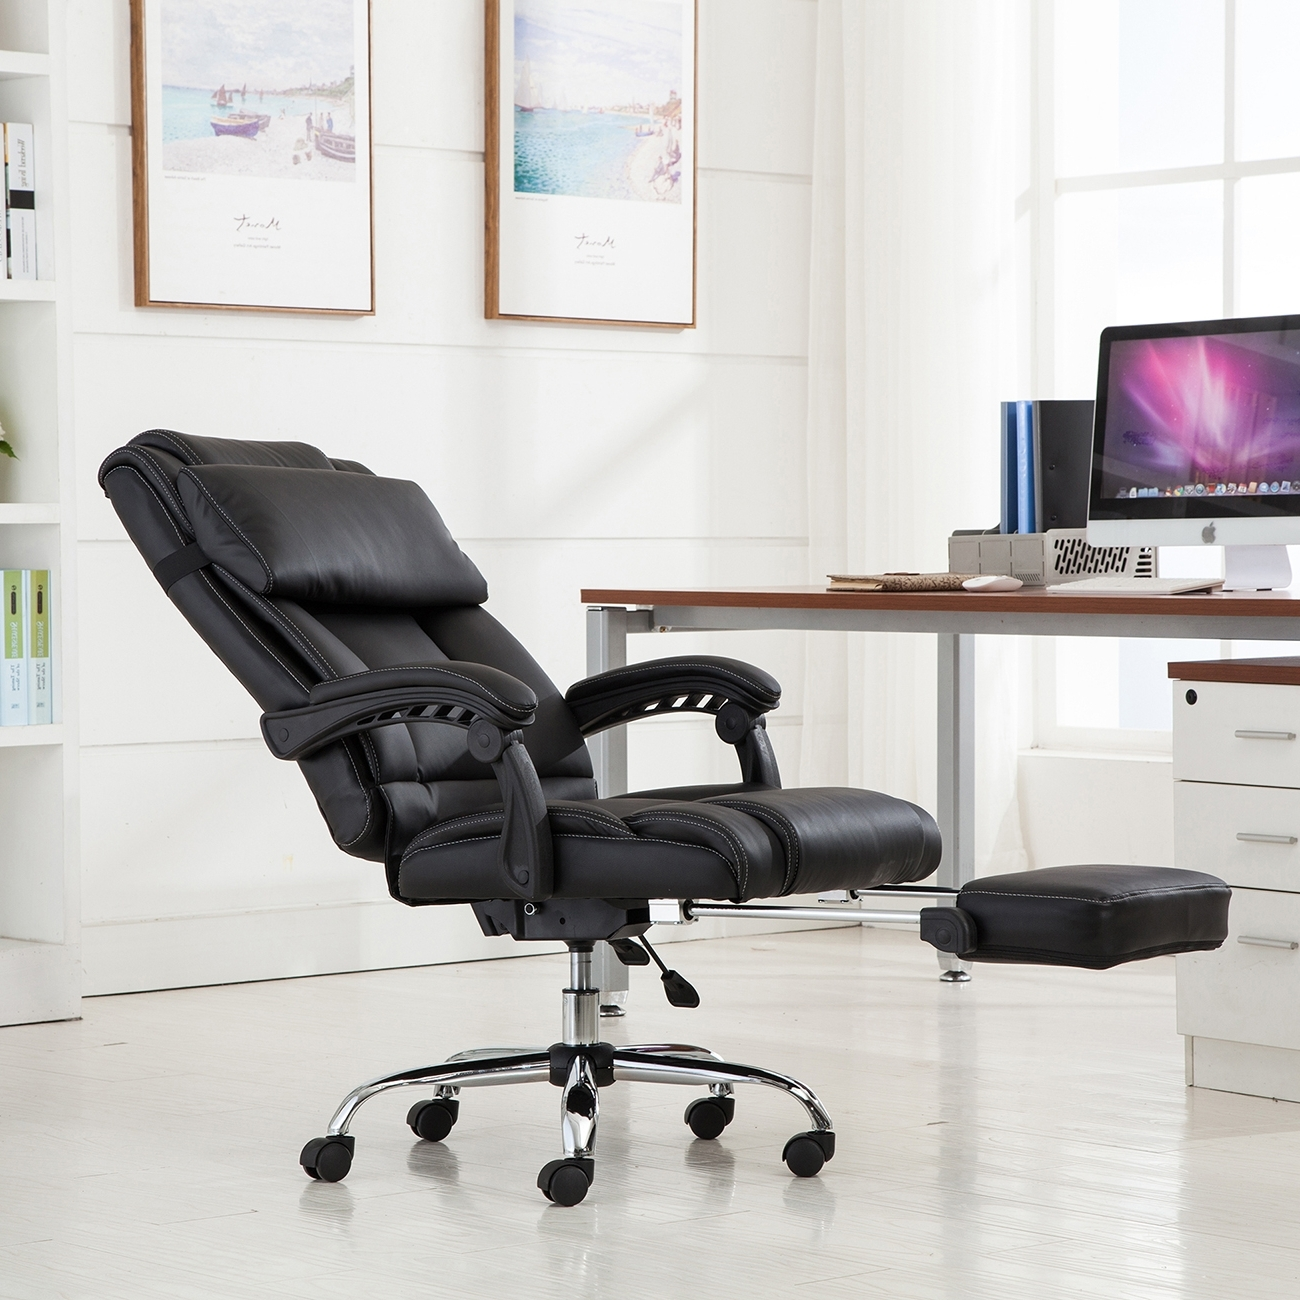 2019 Executive Office Chairs With Footrest In Reclining Chair Ergonomic High Back Leather